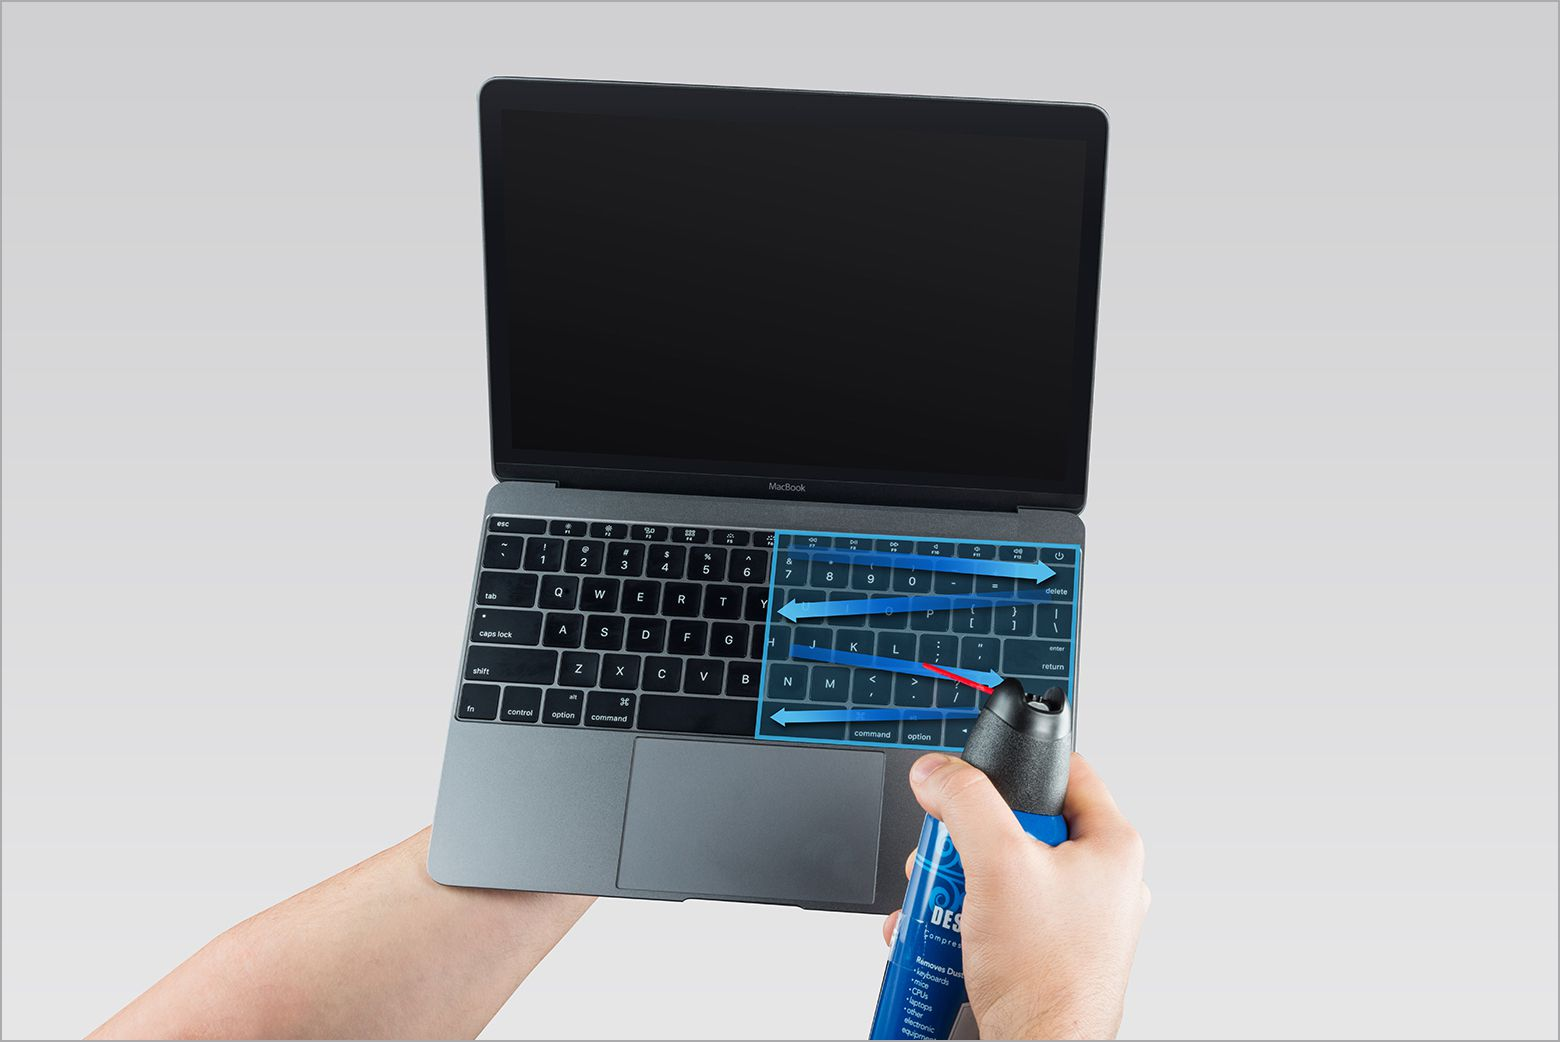 Canned air being used to clean a MacBook keyboard.